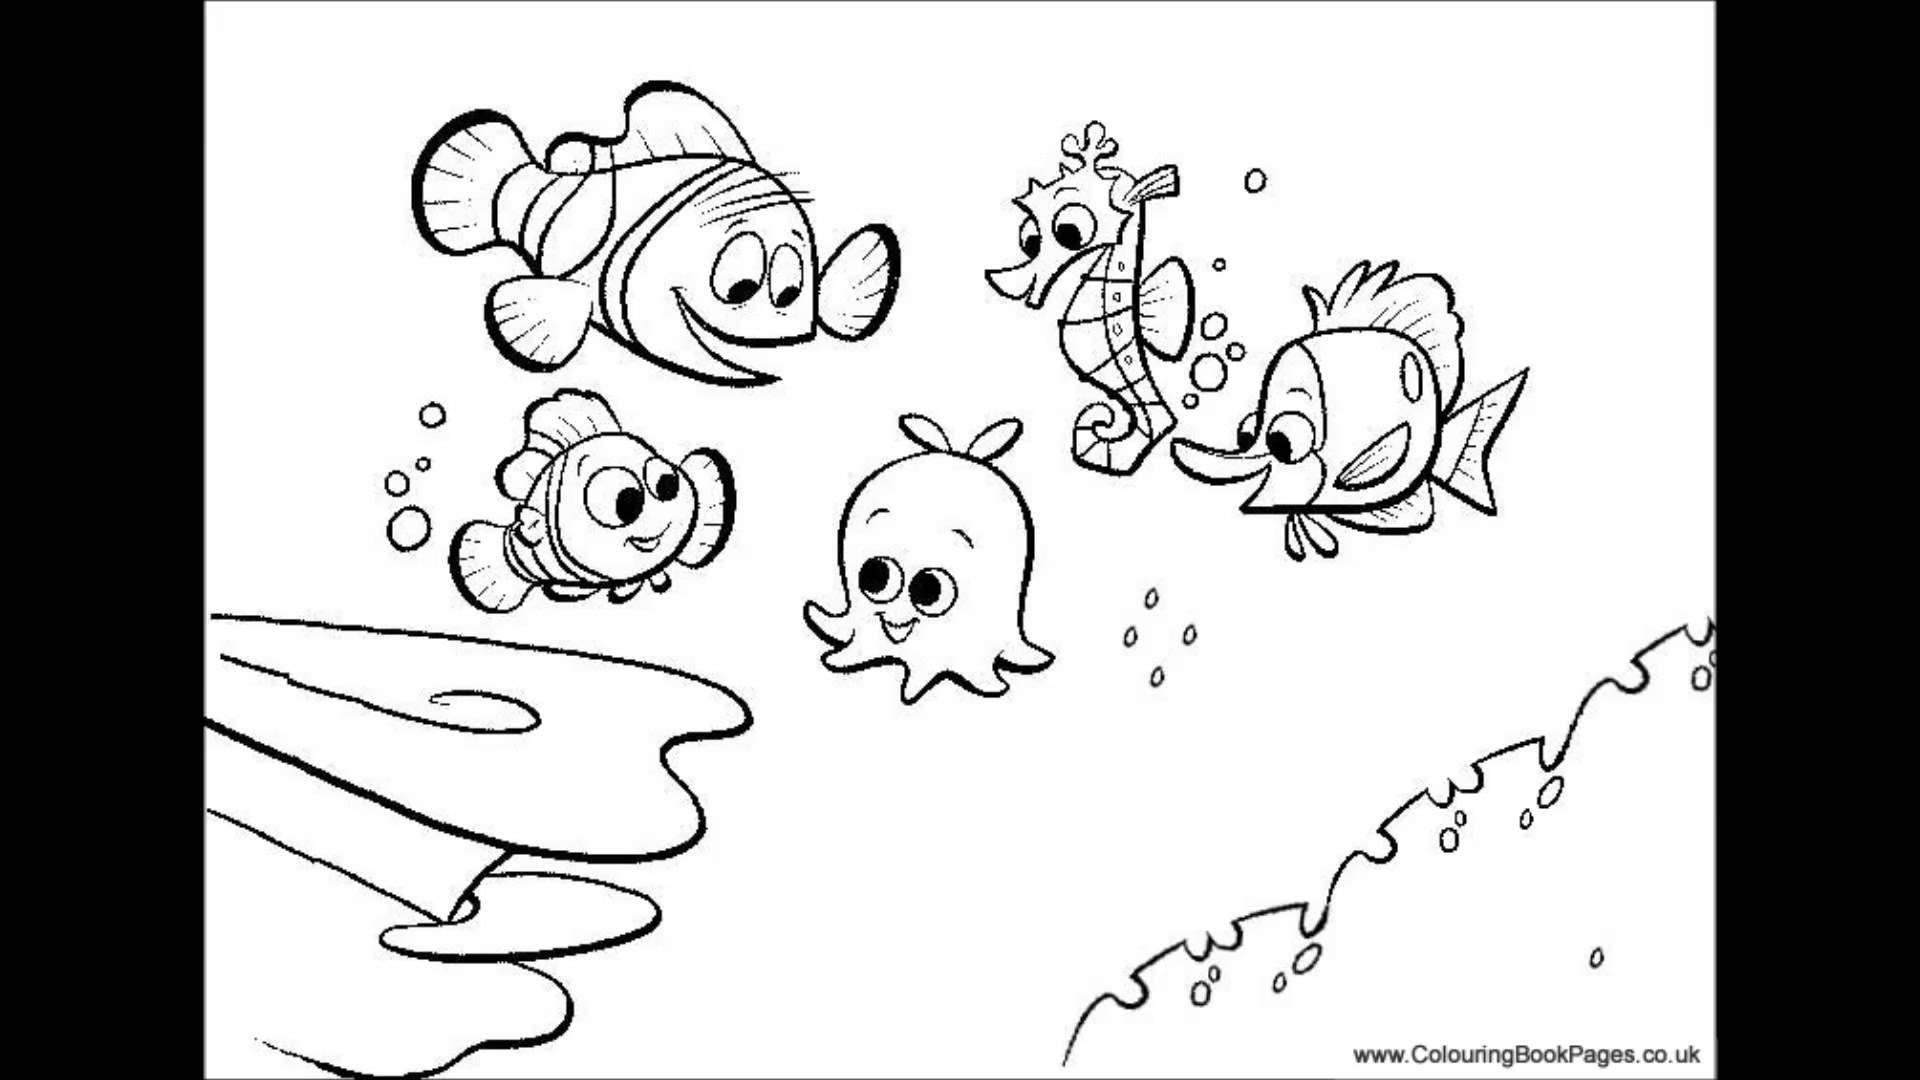 1920x1080 Finding Nemo Colouring Pages And Kids Game Youtube Within Coloring